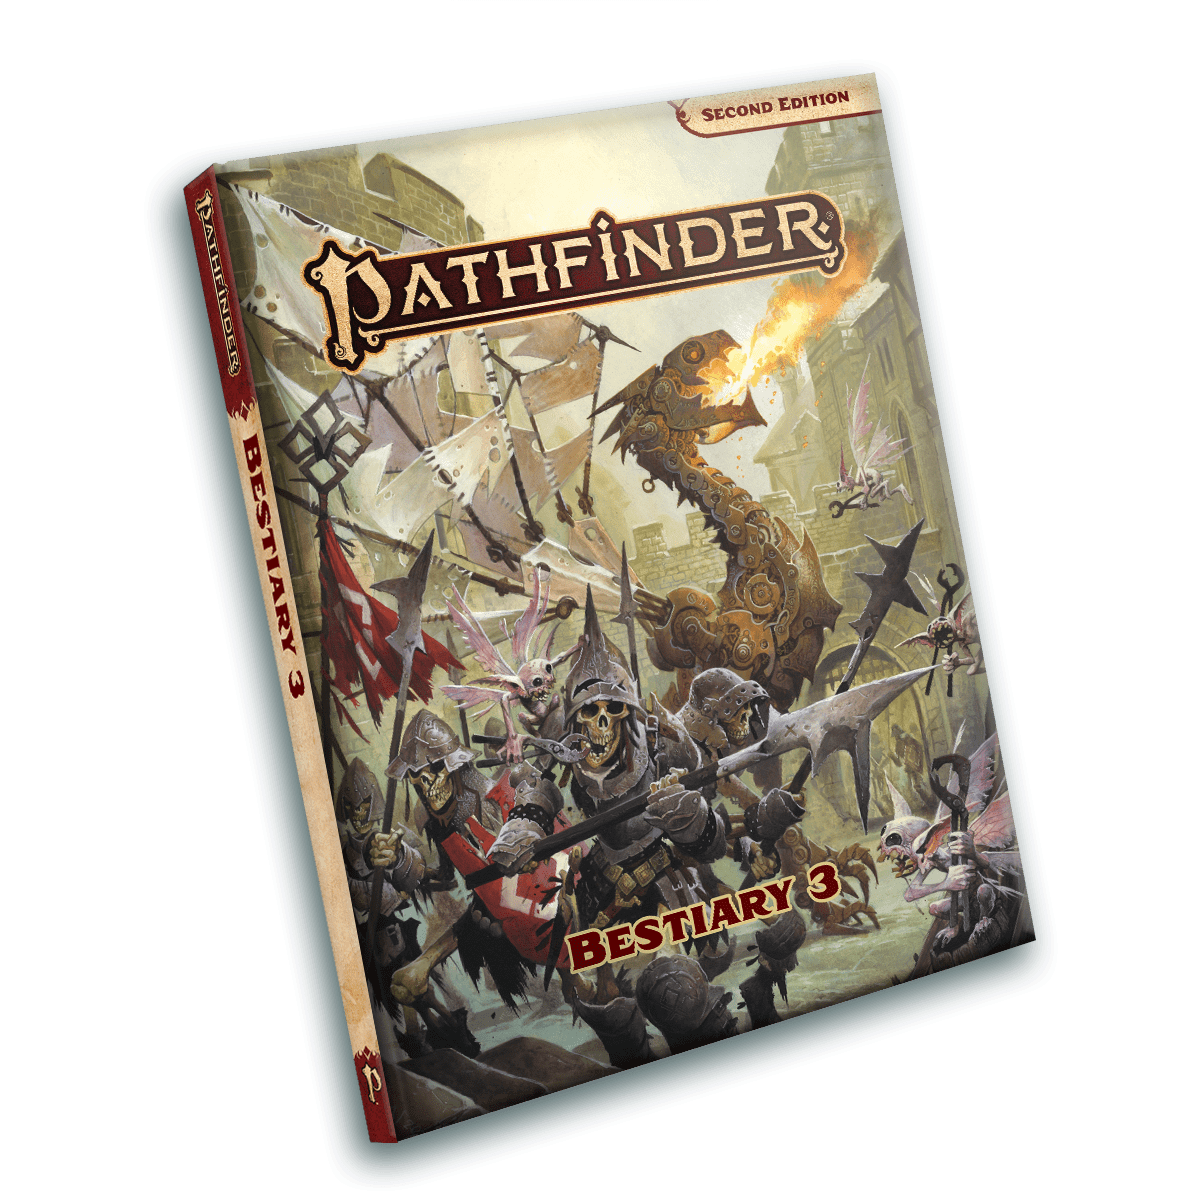 Cover Image for Pathfinder 2 Bestiary 3